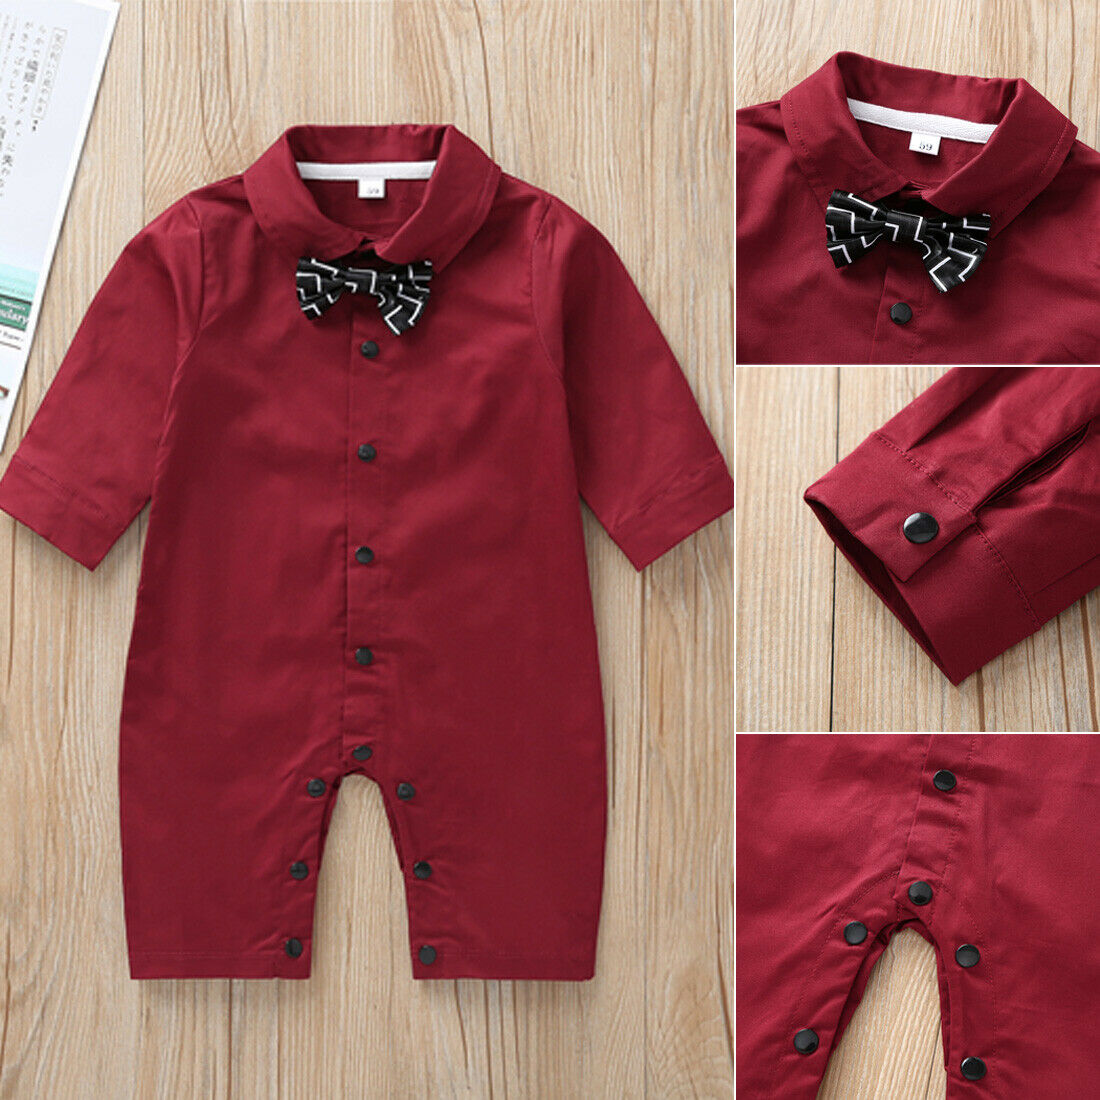 Efaster Infant Baby Boy Gentleman Romper Suit Necktie Tie Solid Jumpsuit Bodysuit Clothes 0-18 Months